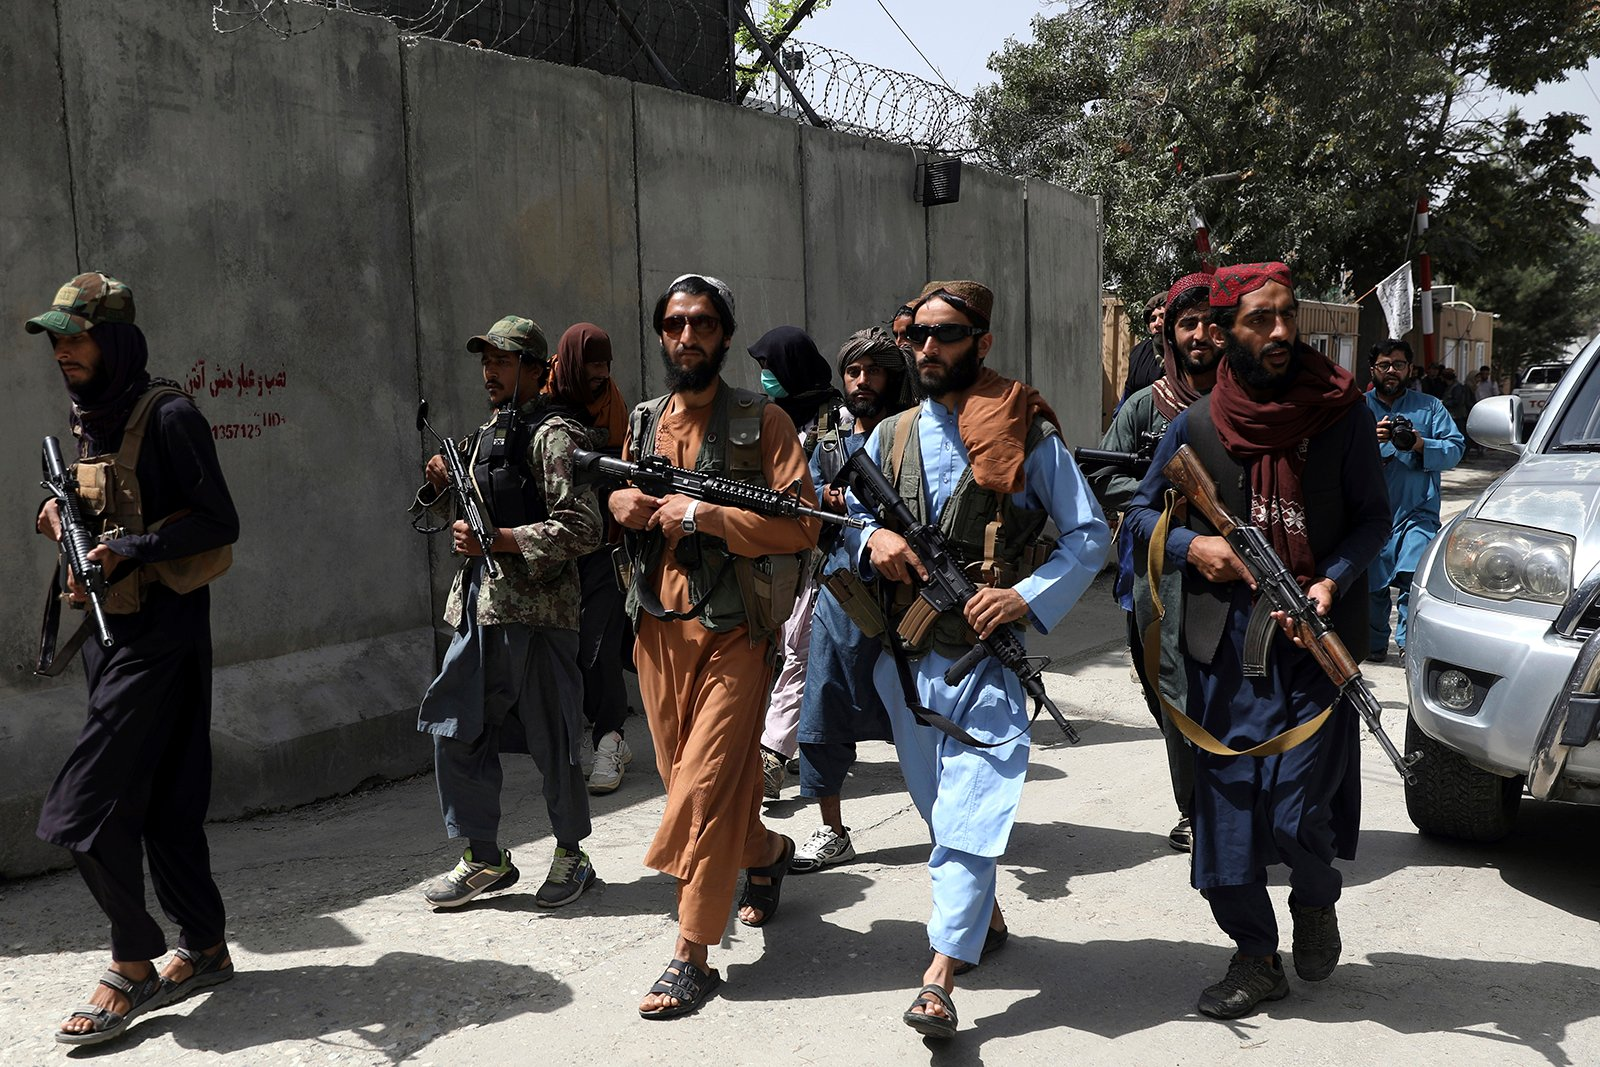 """Taliban fighters patrol in the Wazir Akbar Khan neighborhood of Kabul, Afghanistan, on Aug. 18, 2021. The Taliban declared an """"amnesty"""" across Afghanistan and urged women to join their government Tuesday, seeking to convince a wary population that they have changed a day after deadly chaos gripped the main airport as desperate crowds tried to flee the country. (AP Photo/Rahmat Gul)"""